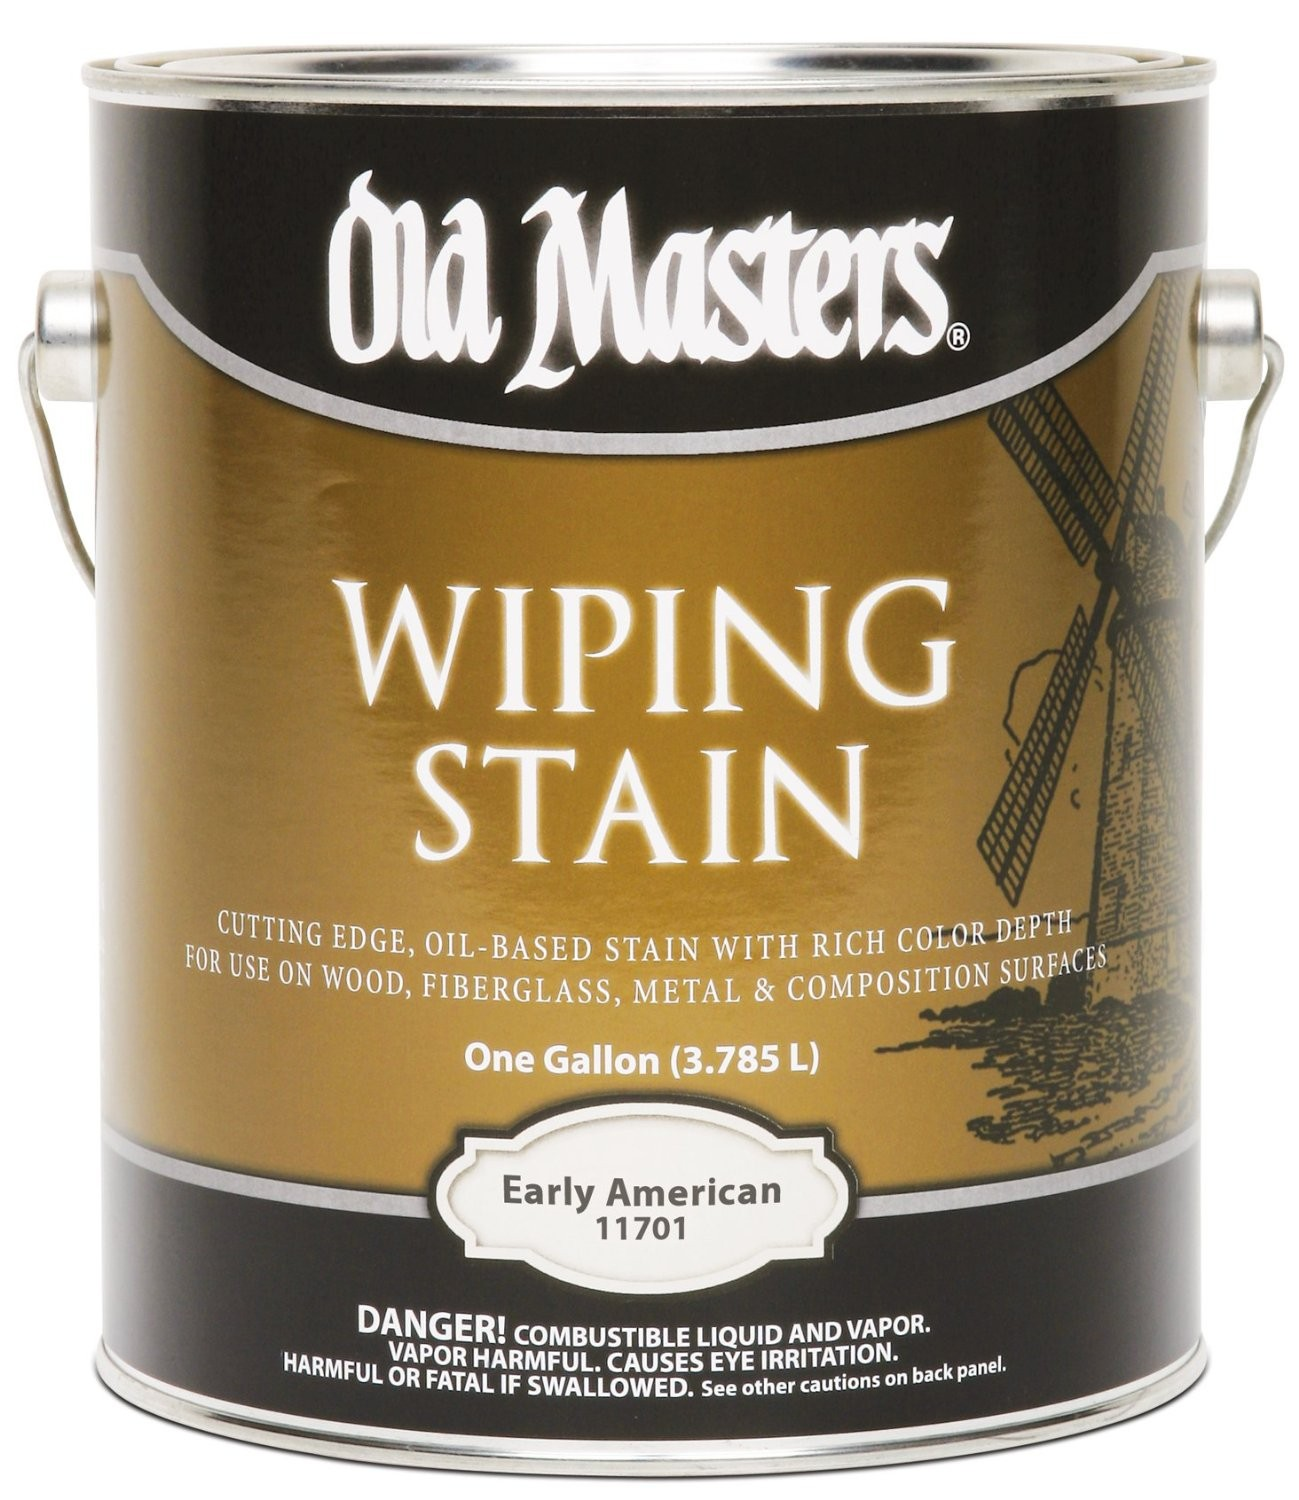 Prissy Wiping Wood Early American View Larger Image Buy Masters Wiping Wood Early American Gallon Early American Stain On Oak Early American Stain On Red Oak S houzz-03 Early American Stain